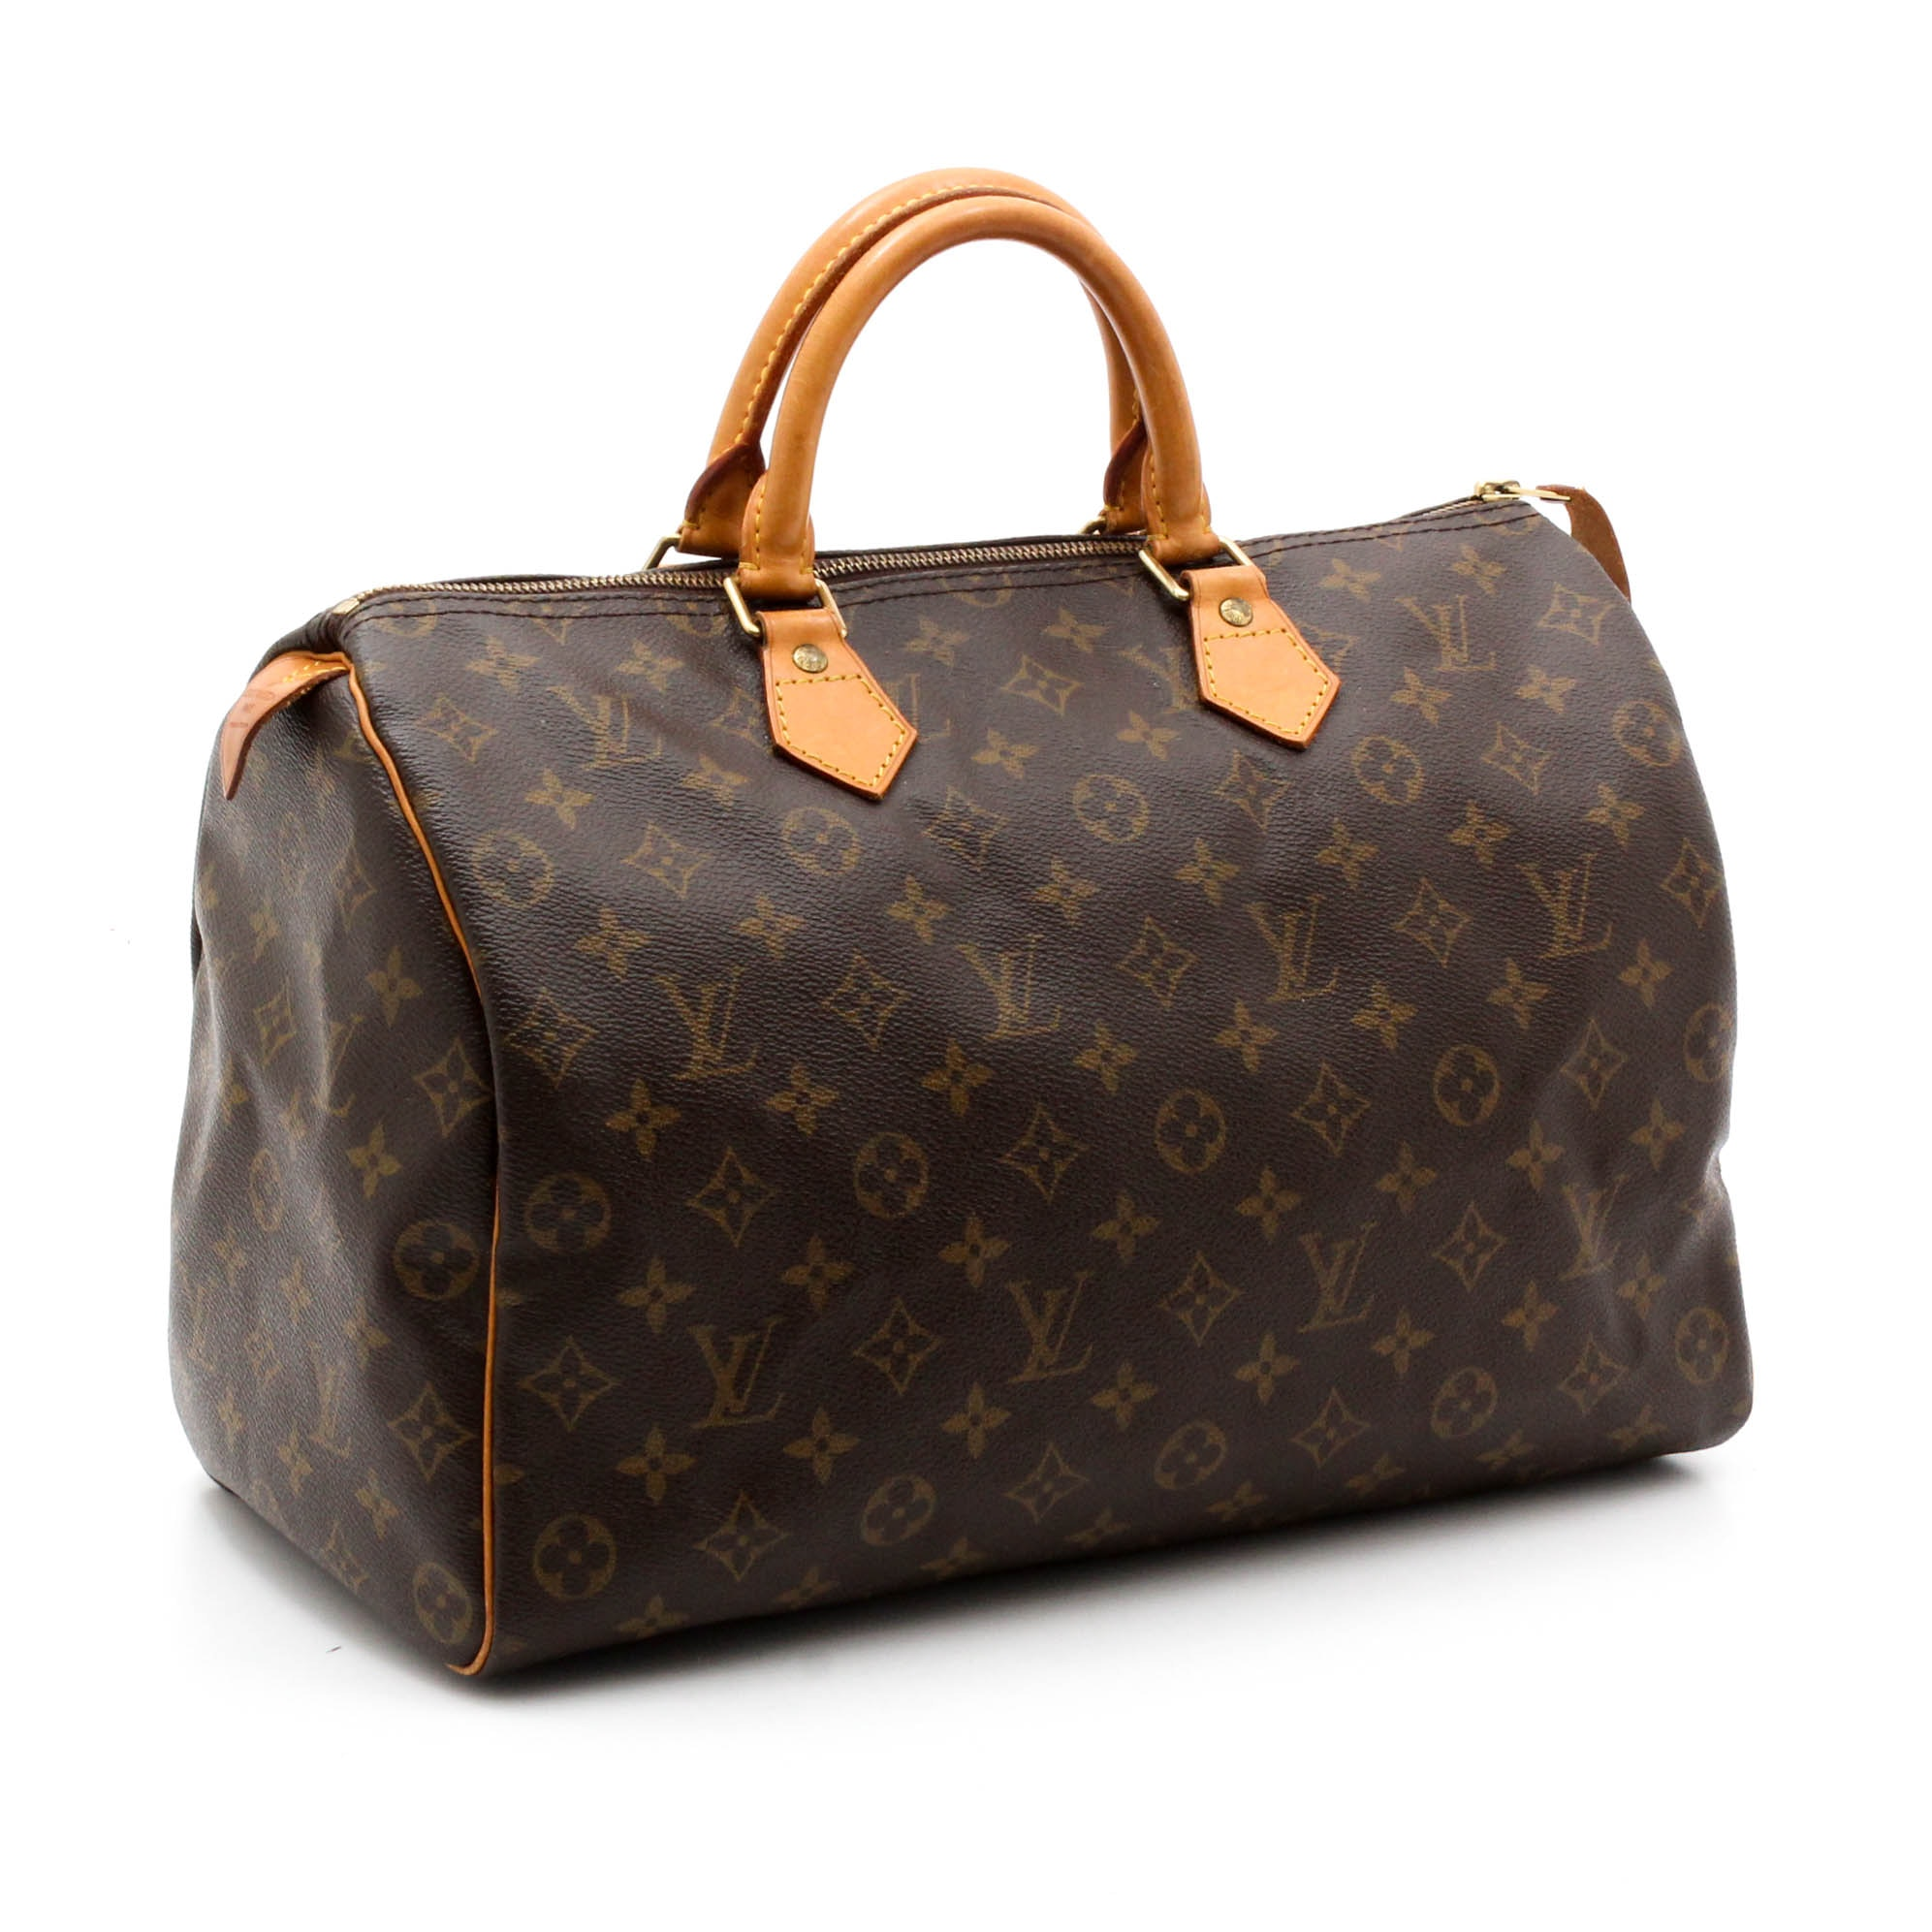 1994 Louis Vuitton Monogram Canvas Speedy 40 Tote